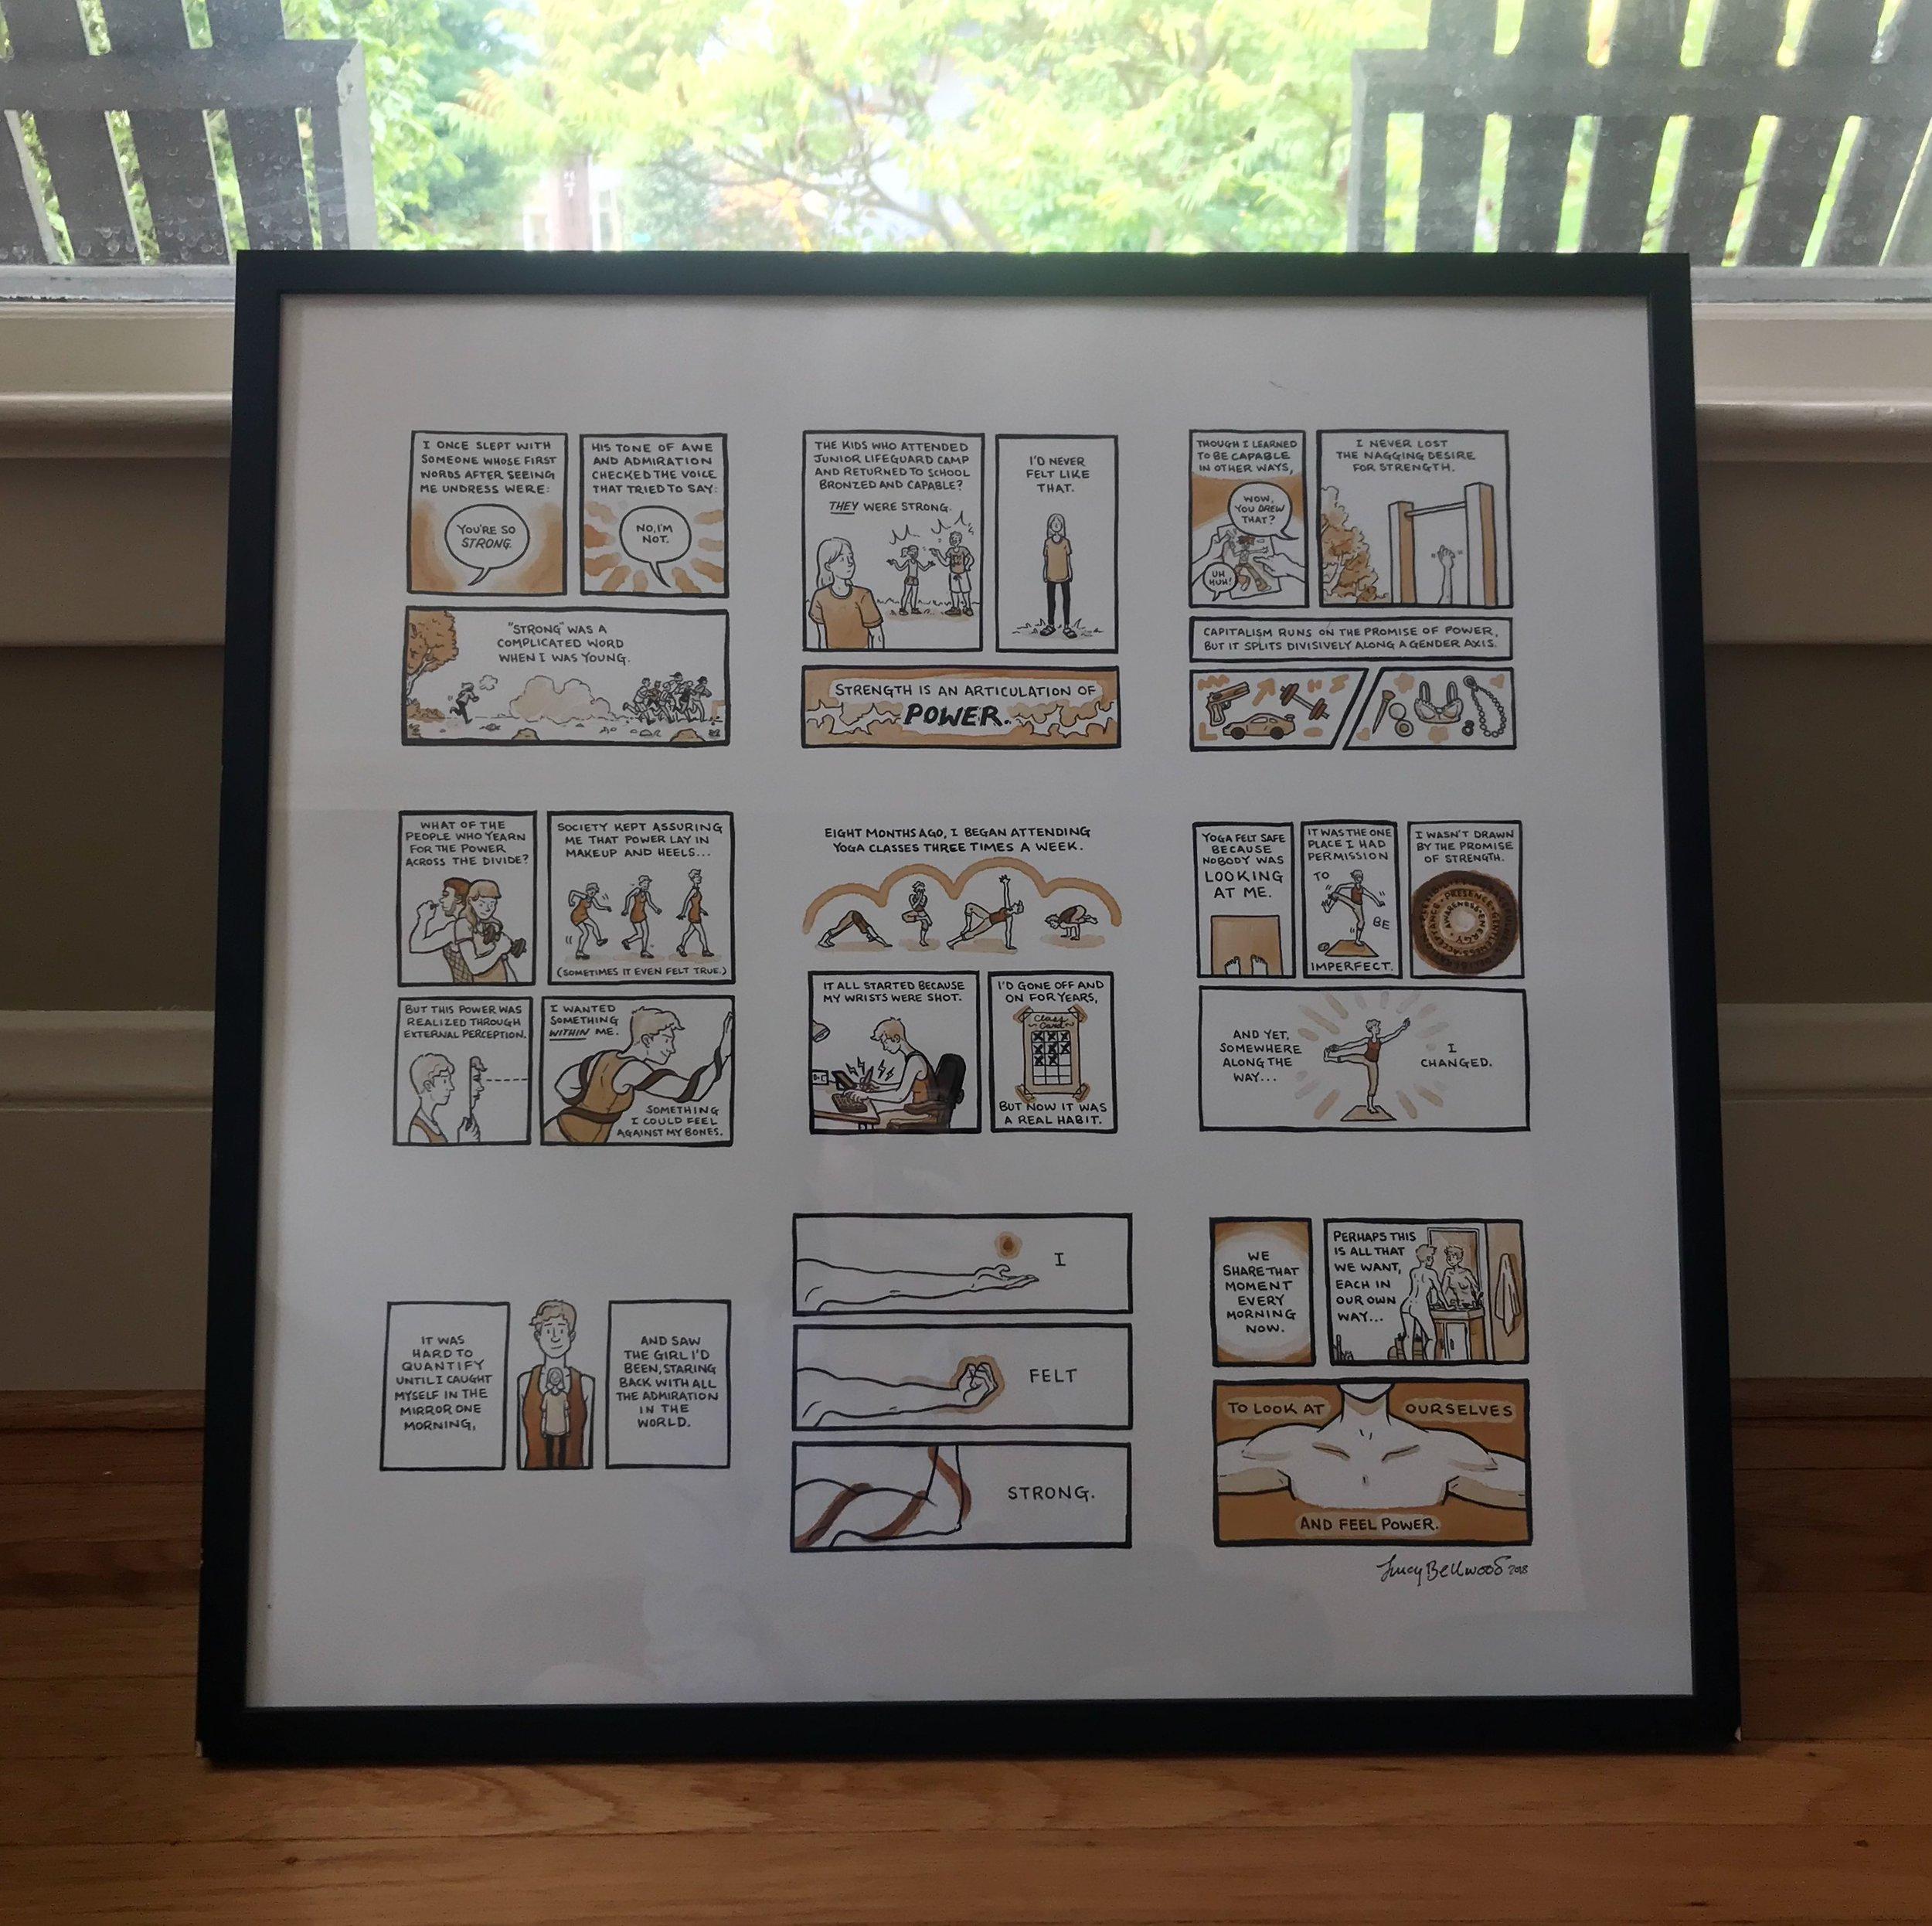 """Framed print of """"To Feel Strong"""" cartoon by Lucy Bellwood"""